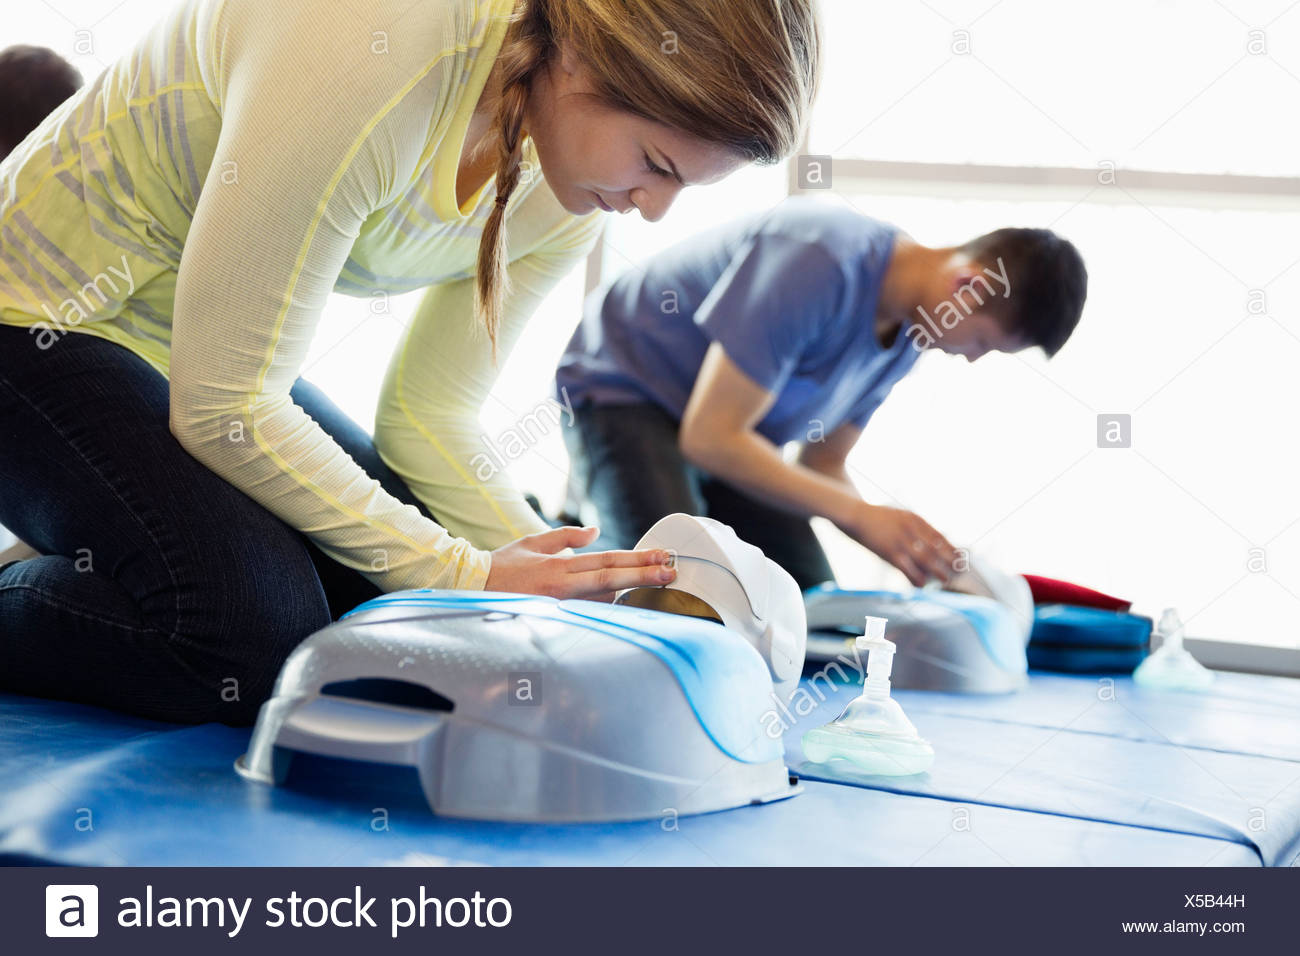 Woman practicing CPR on dummy in first aid class - Stock Image